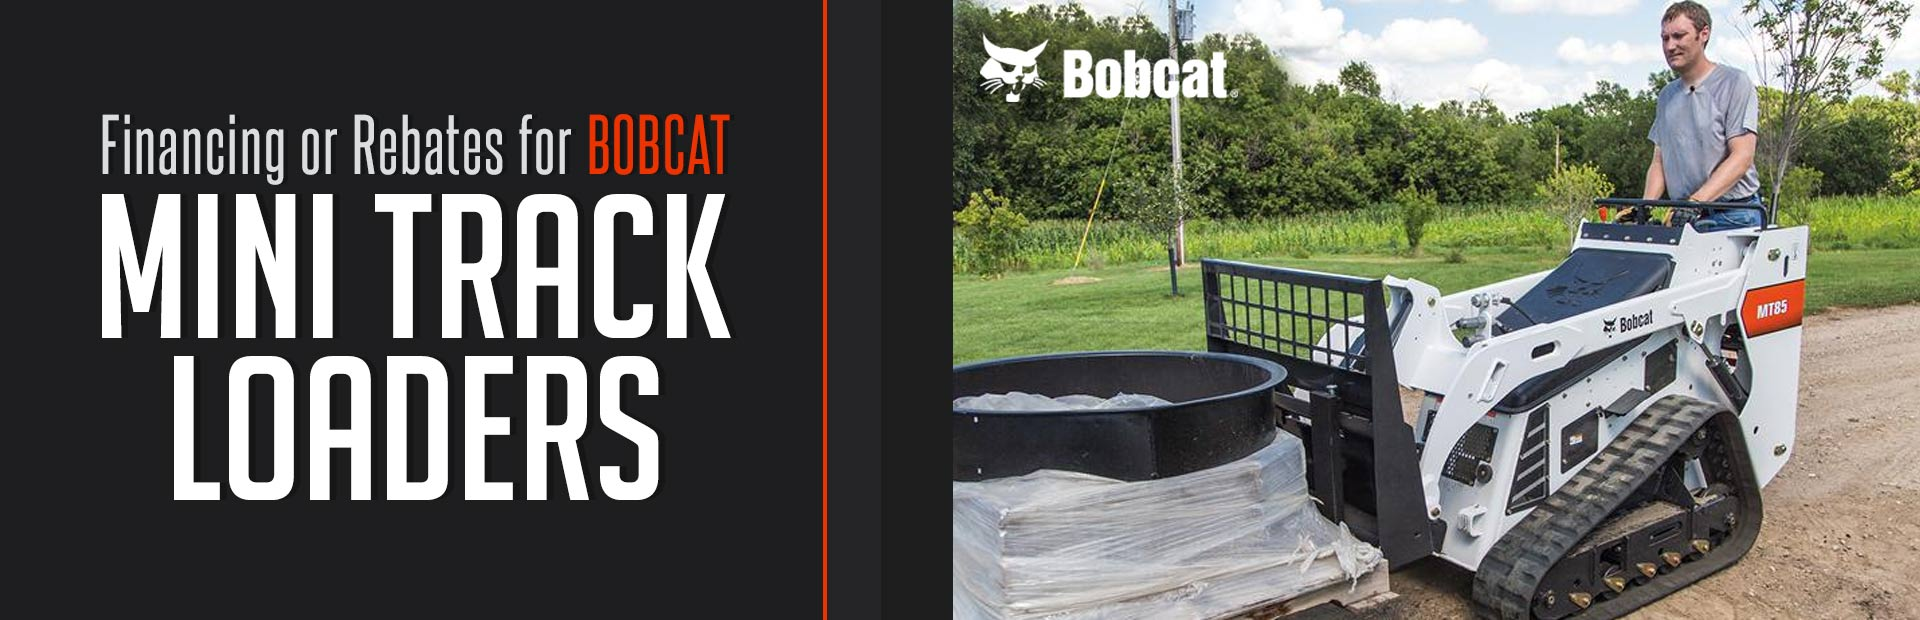 Bobcat: Financing or Rebates for Bobcat Mini Track Loaders